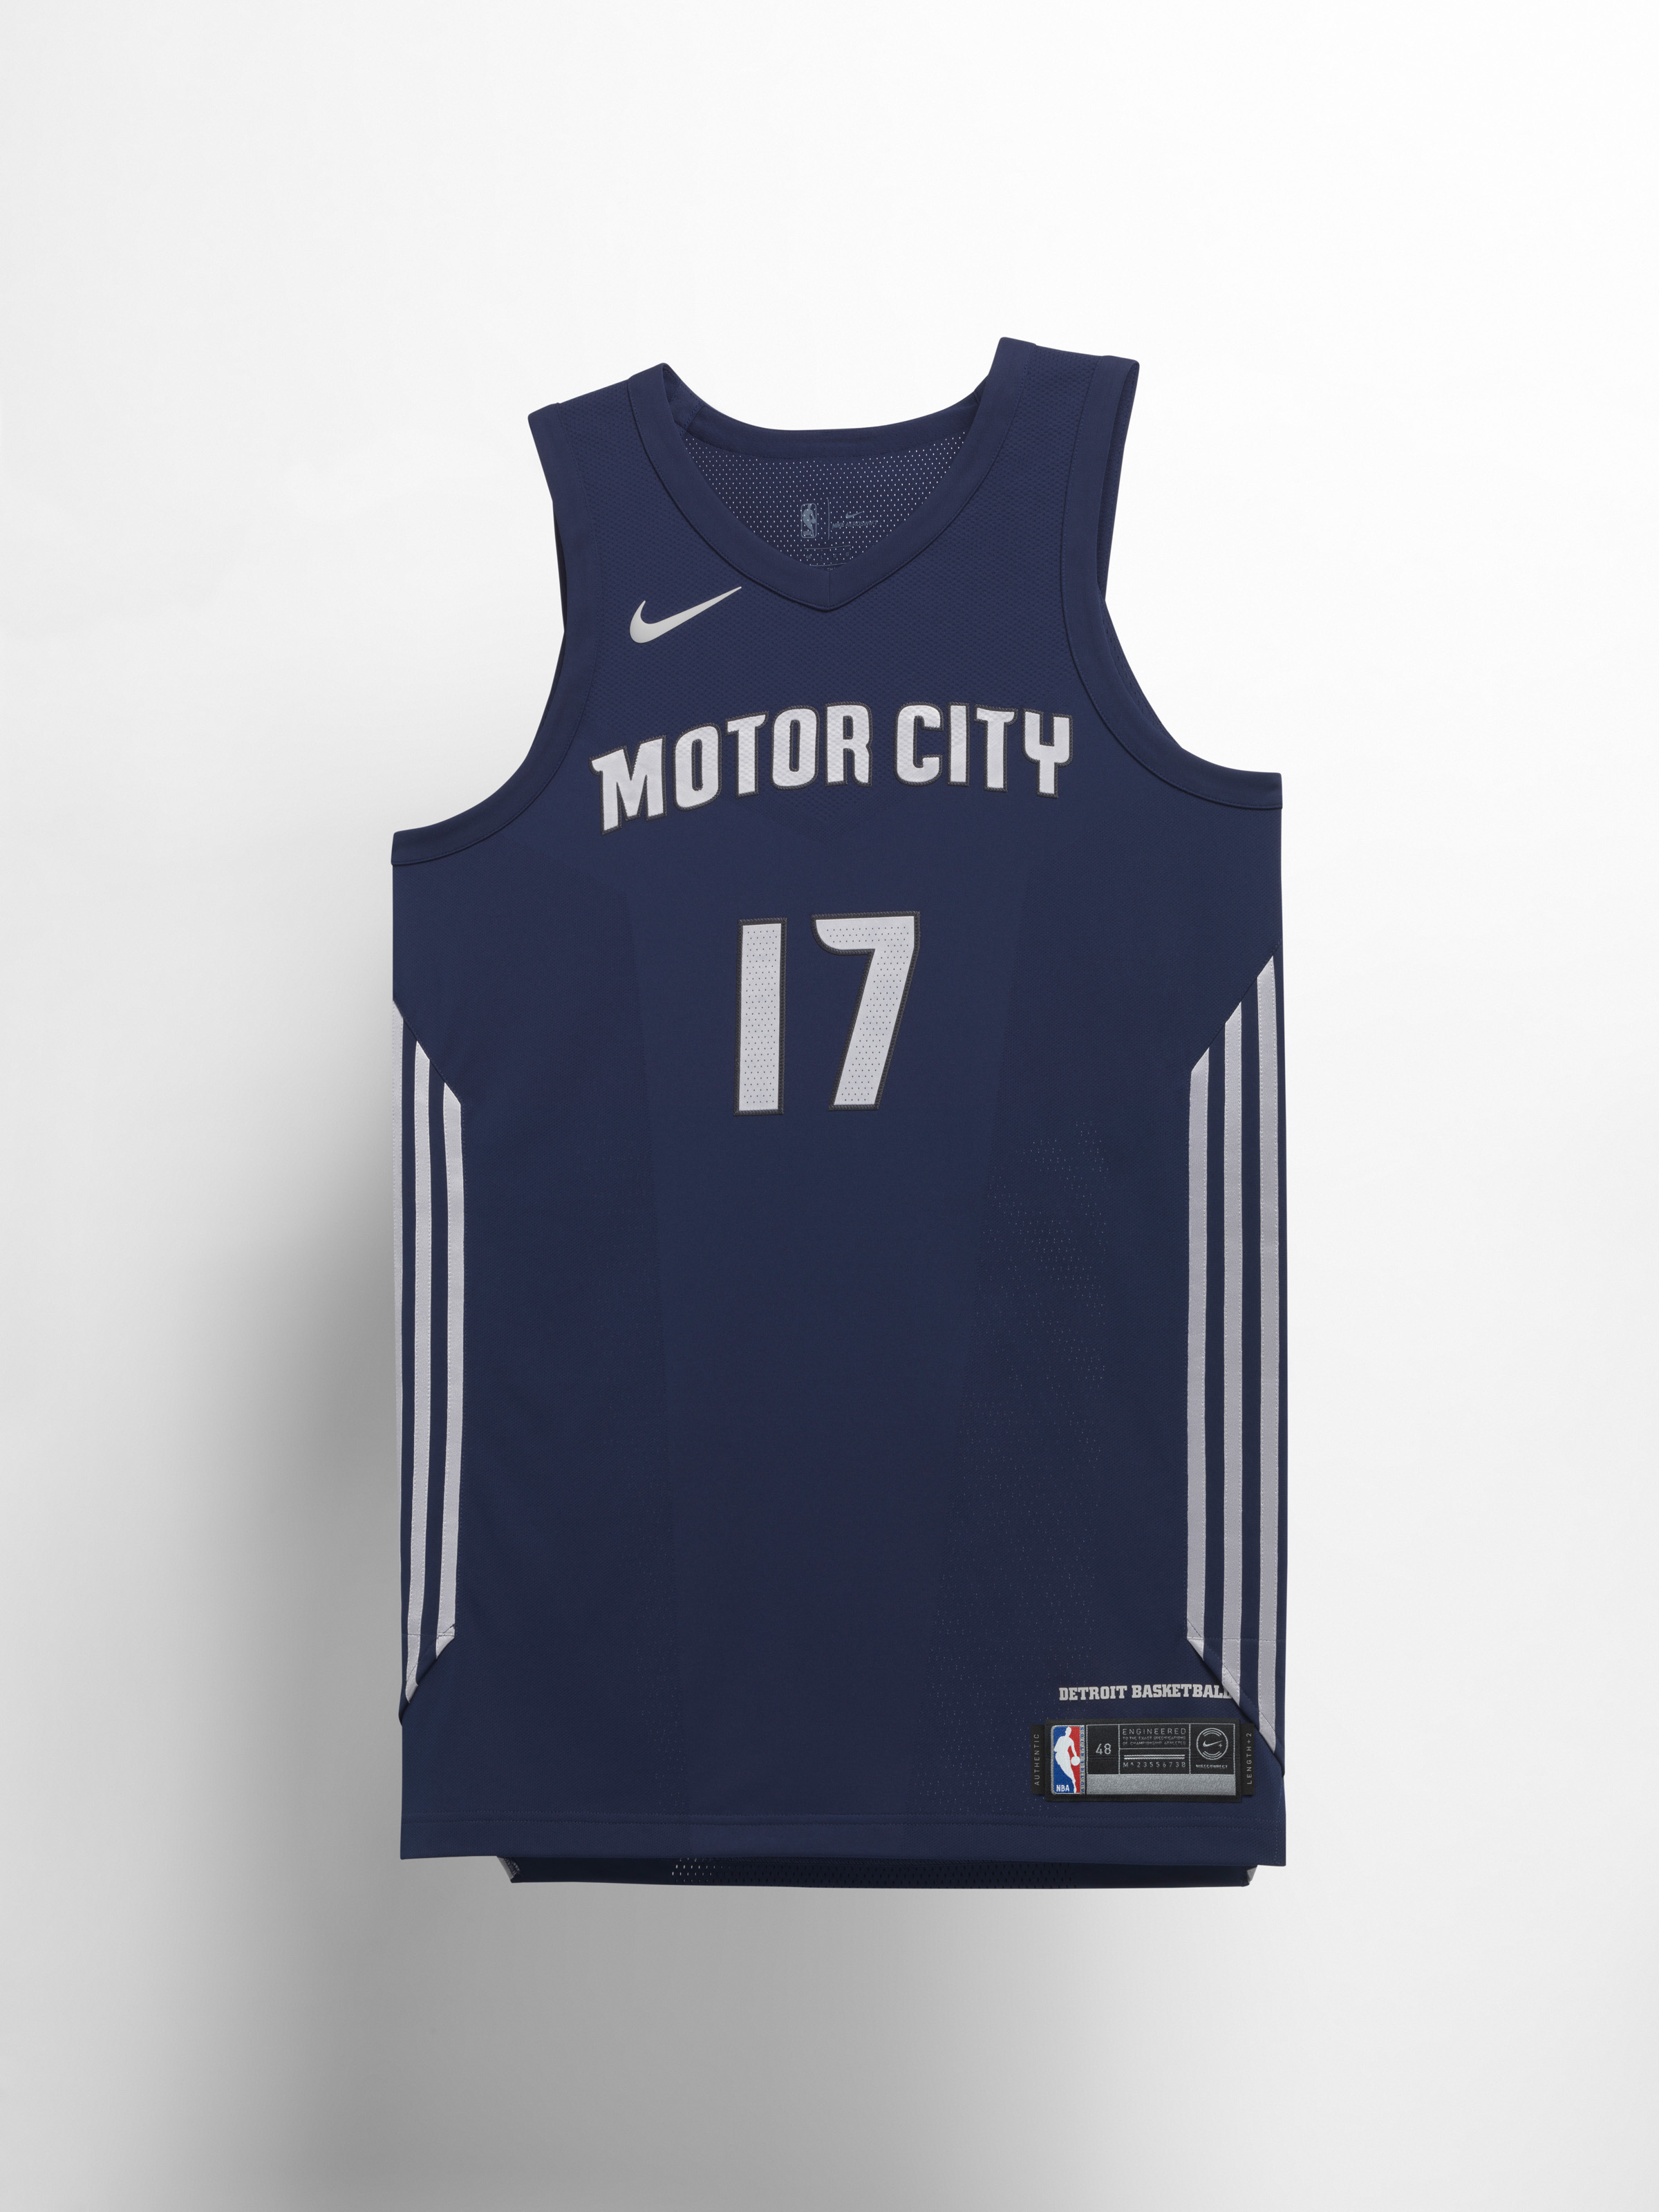 50a58d03e Detroit Pistons. The lines and chrome detailing in the Pistons  uniforms  pay homage ...